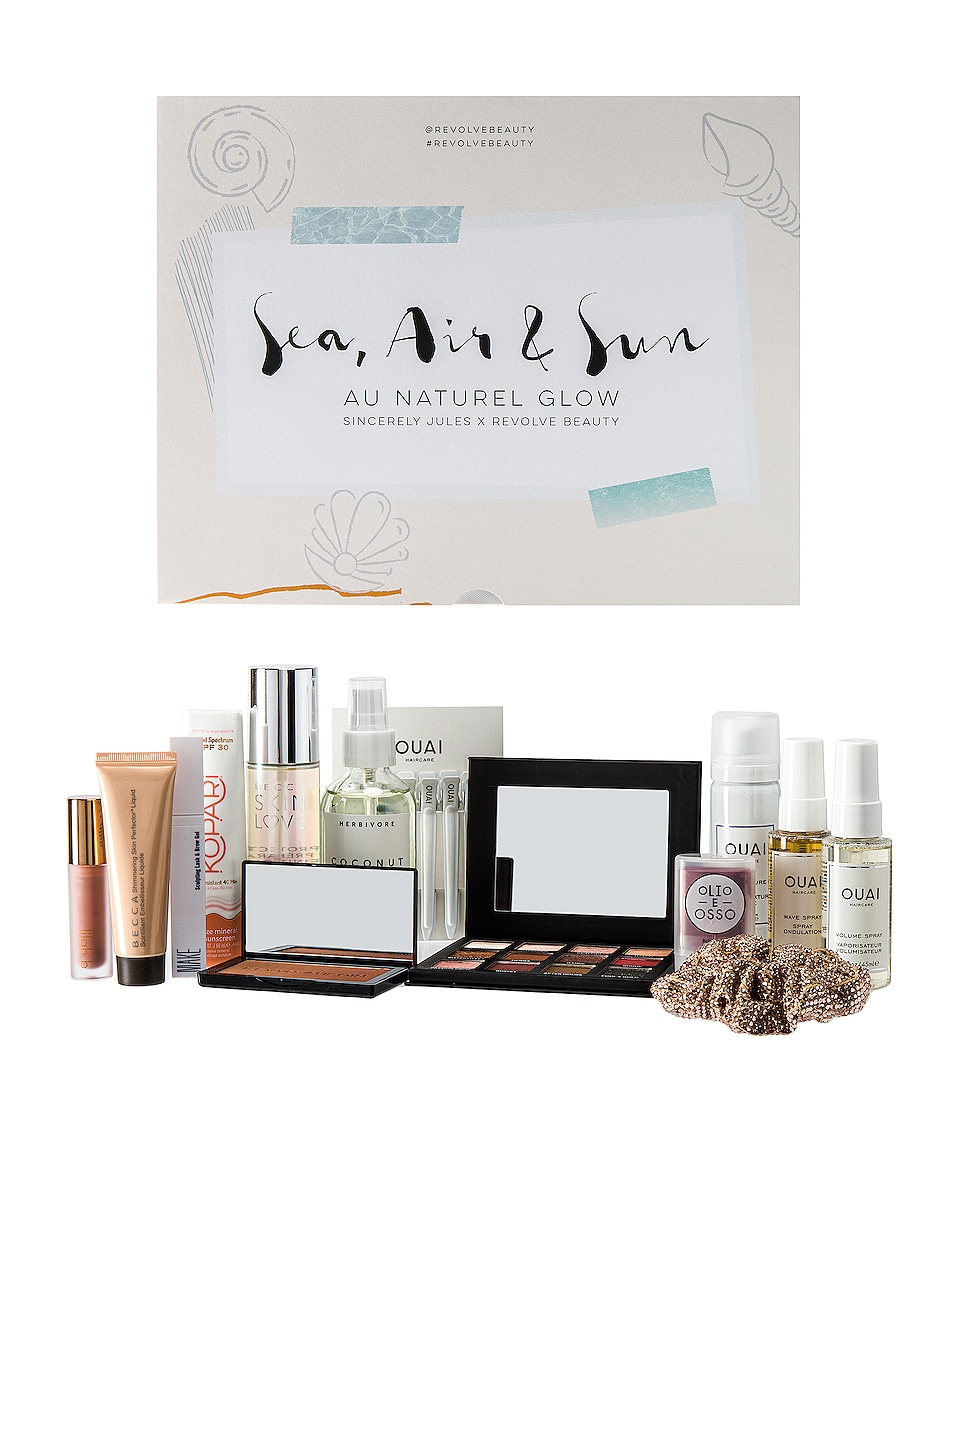 REVOLVE Beauty x Sincerely Jules Sea, Air, & Sun Au Naturel Glow